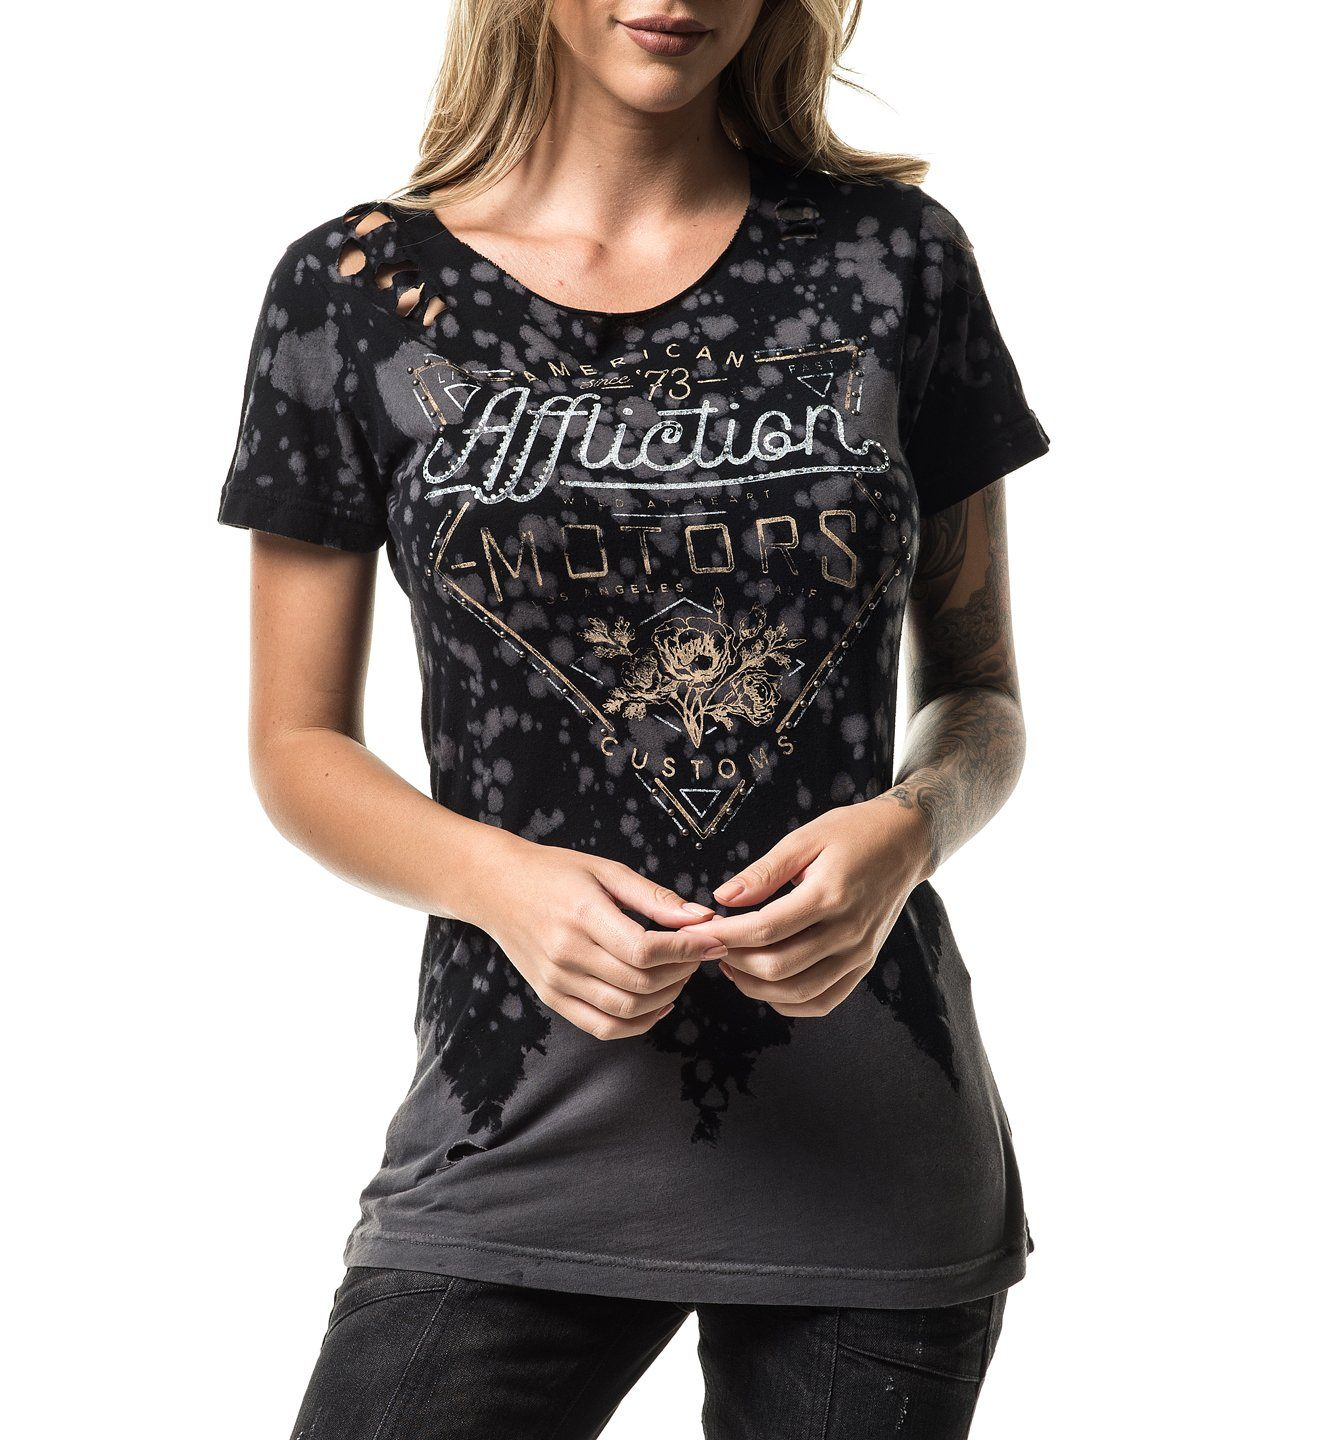 Womens Short Sleeve Tees - Ac Cali Fresh